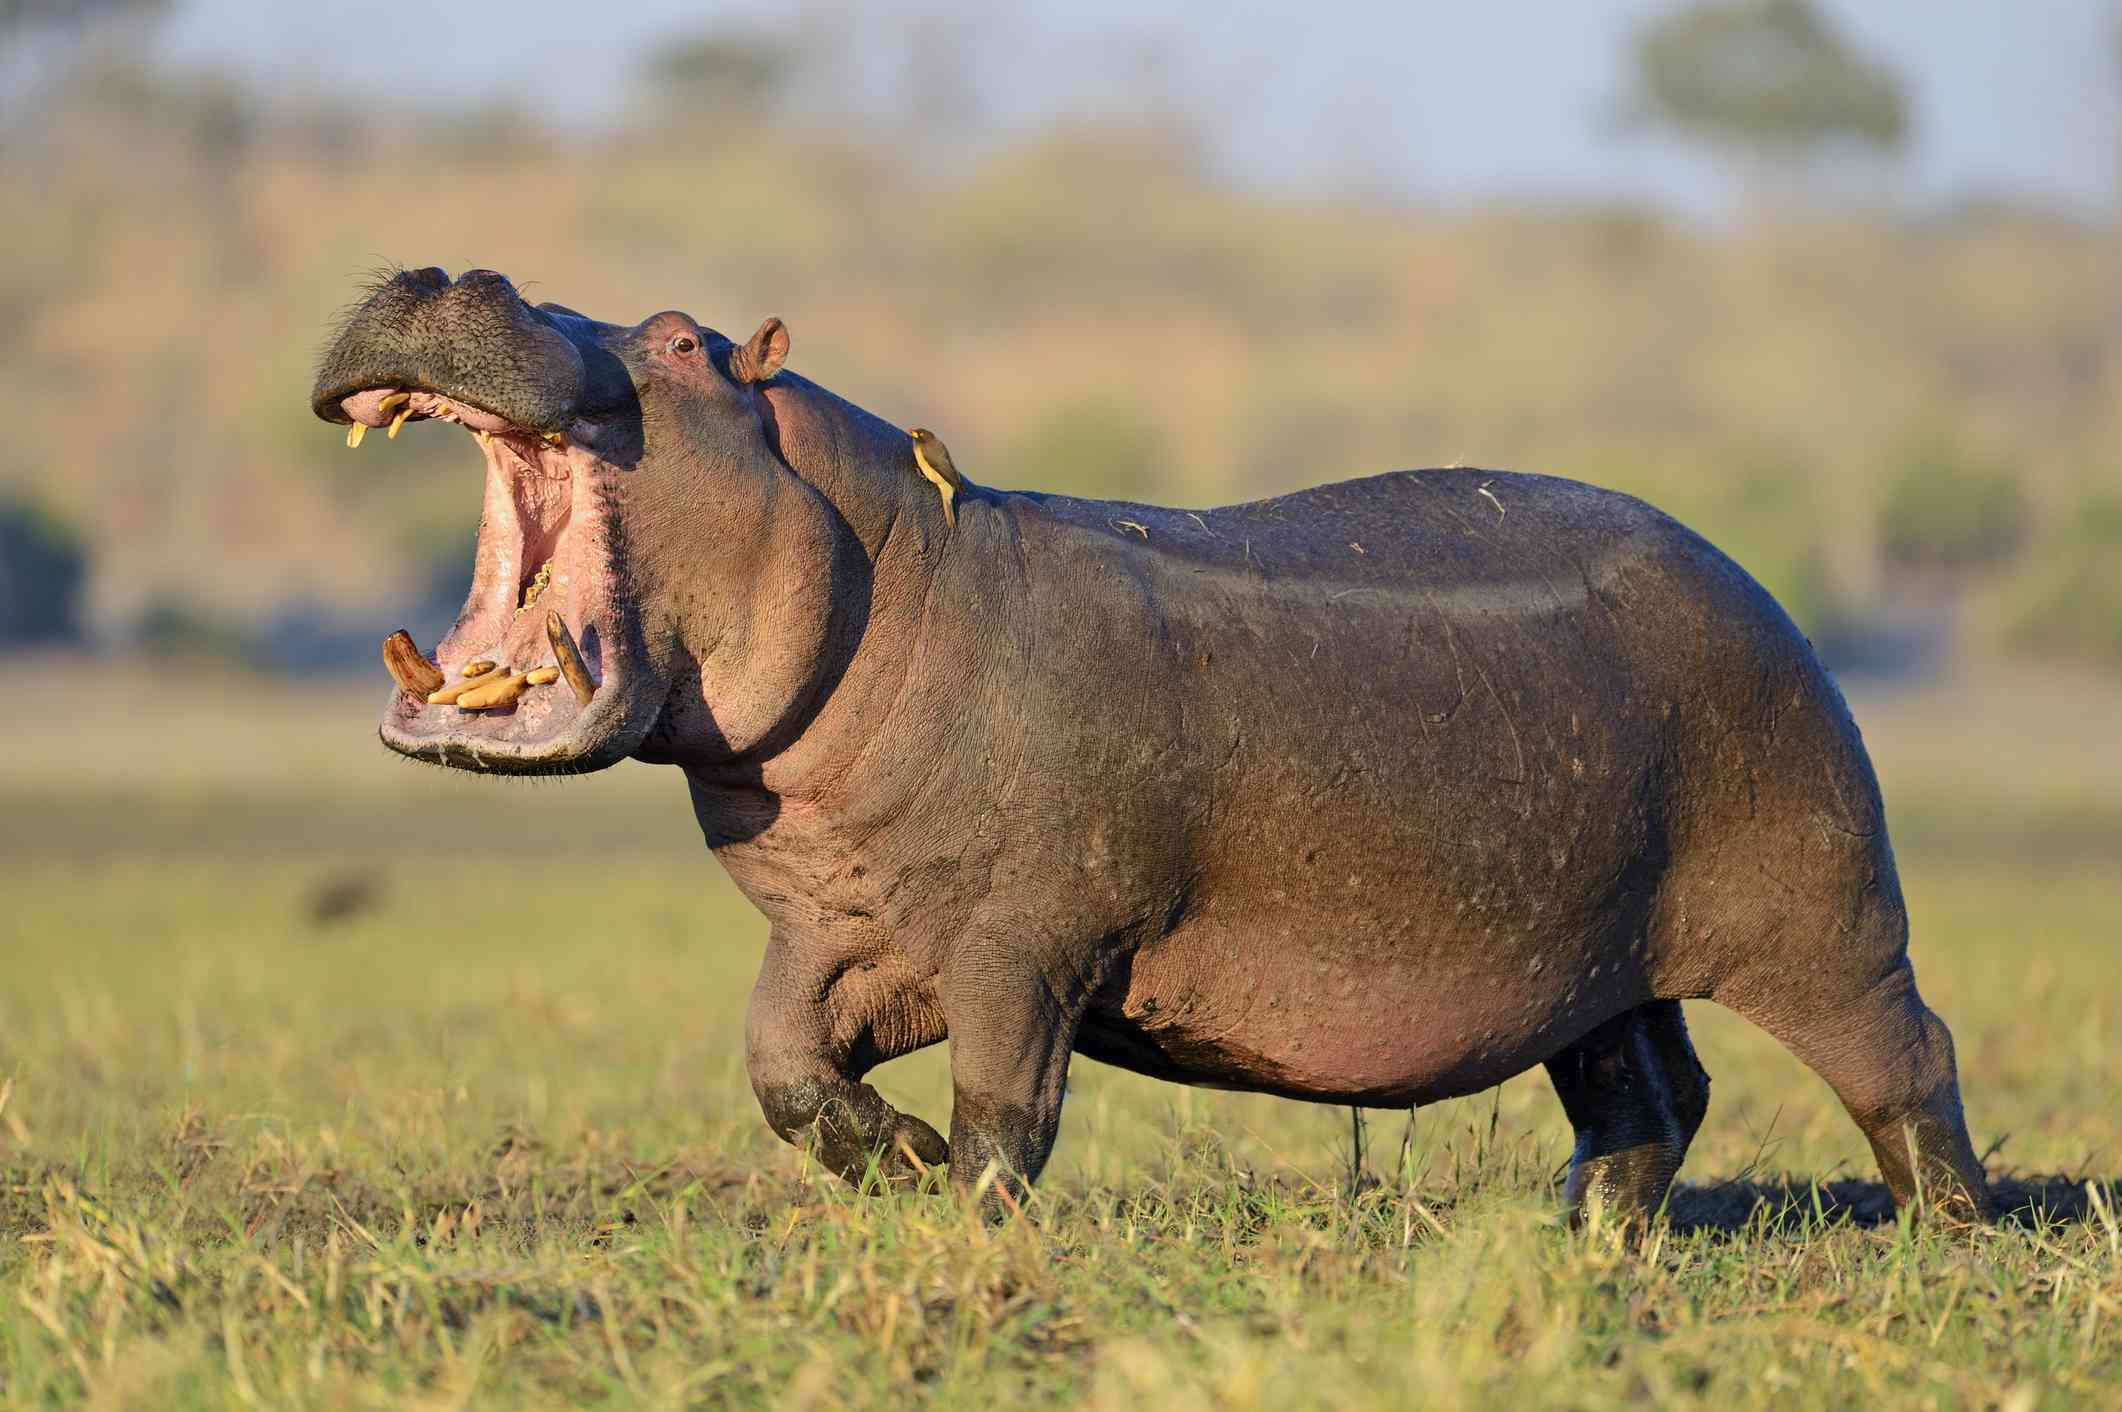 Close up of a wild hippo with its mouth open